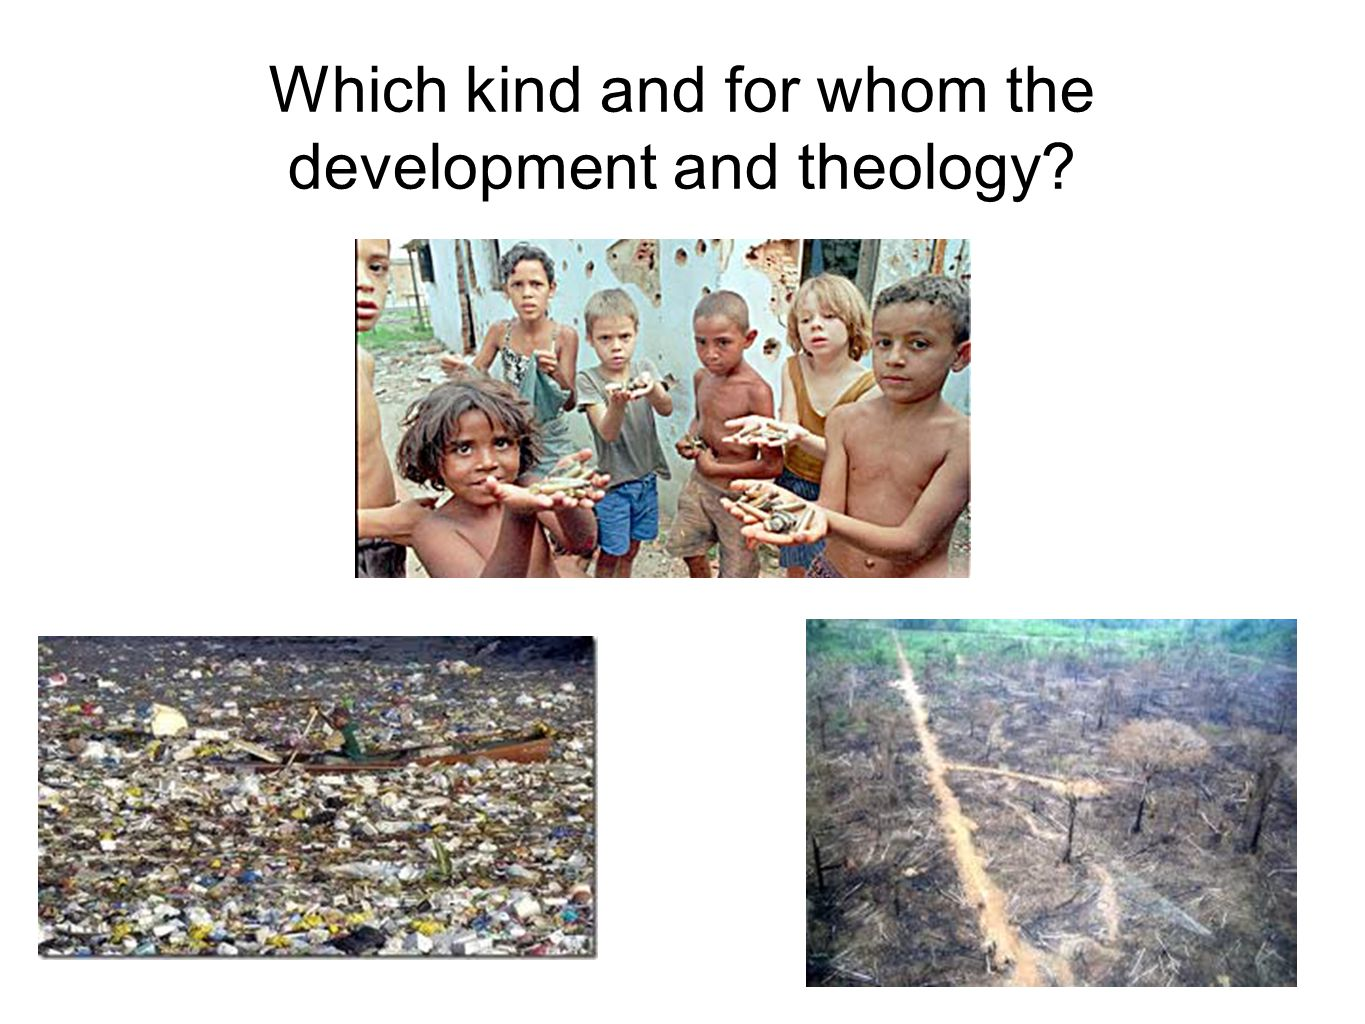 Which kind and for whom the development and theology